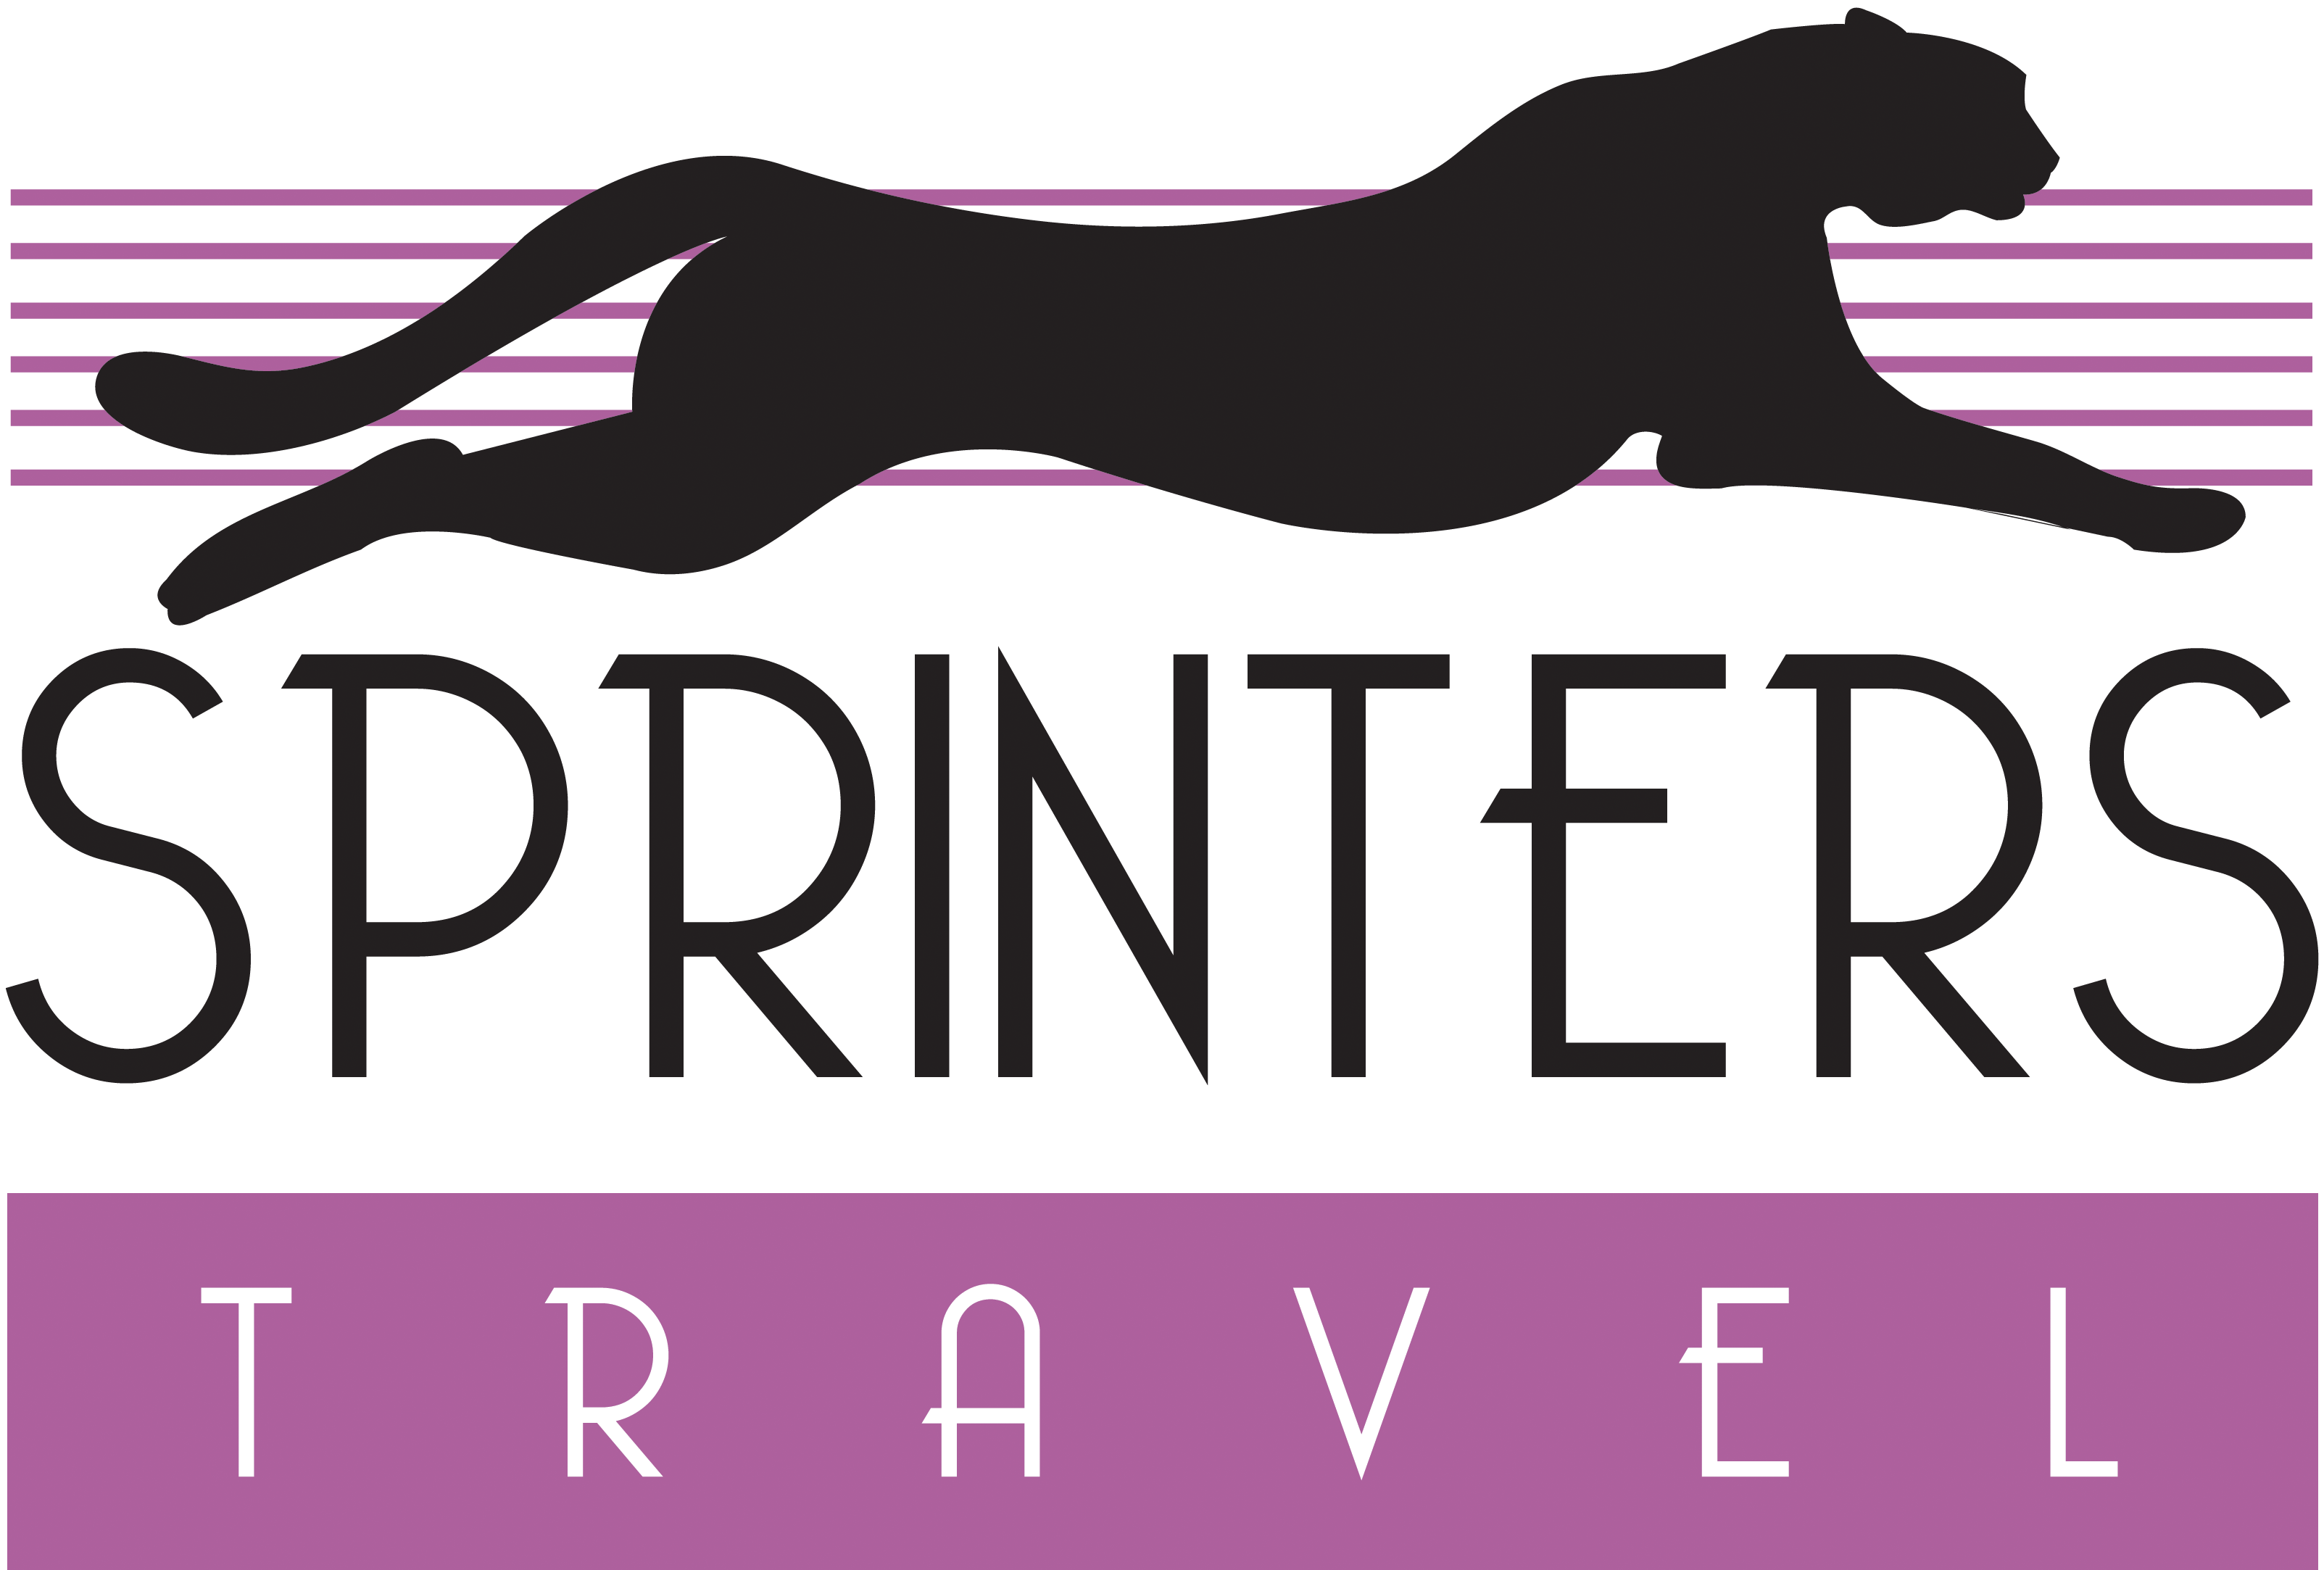 Sprinters Travel | Luxury Minibus Hire High Wycombe | 8 - 53 seats | Sprinters Travel